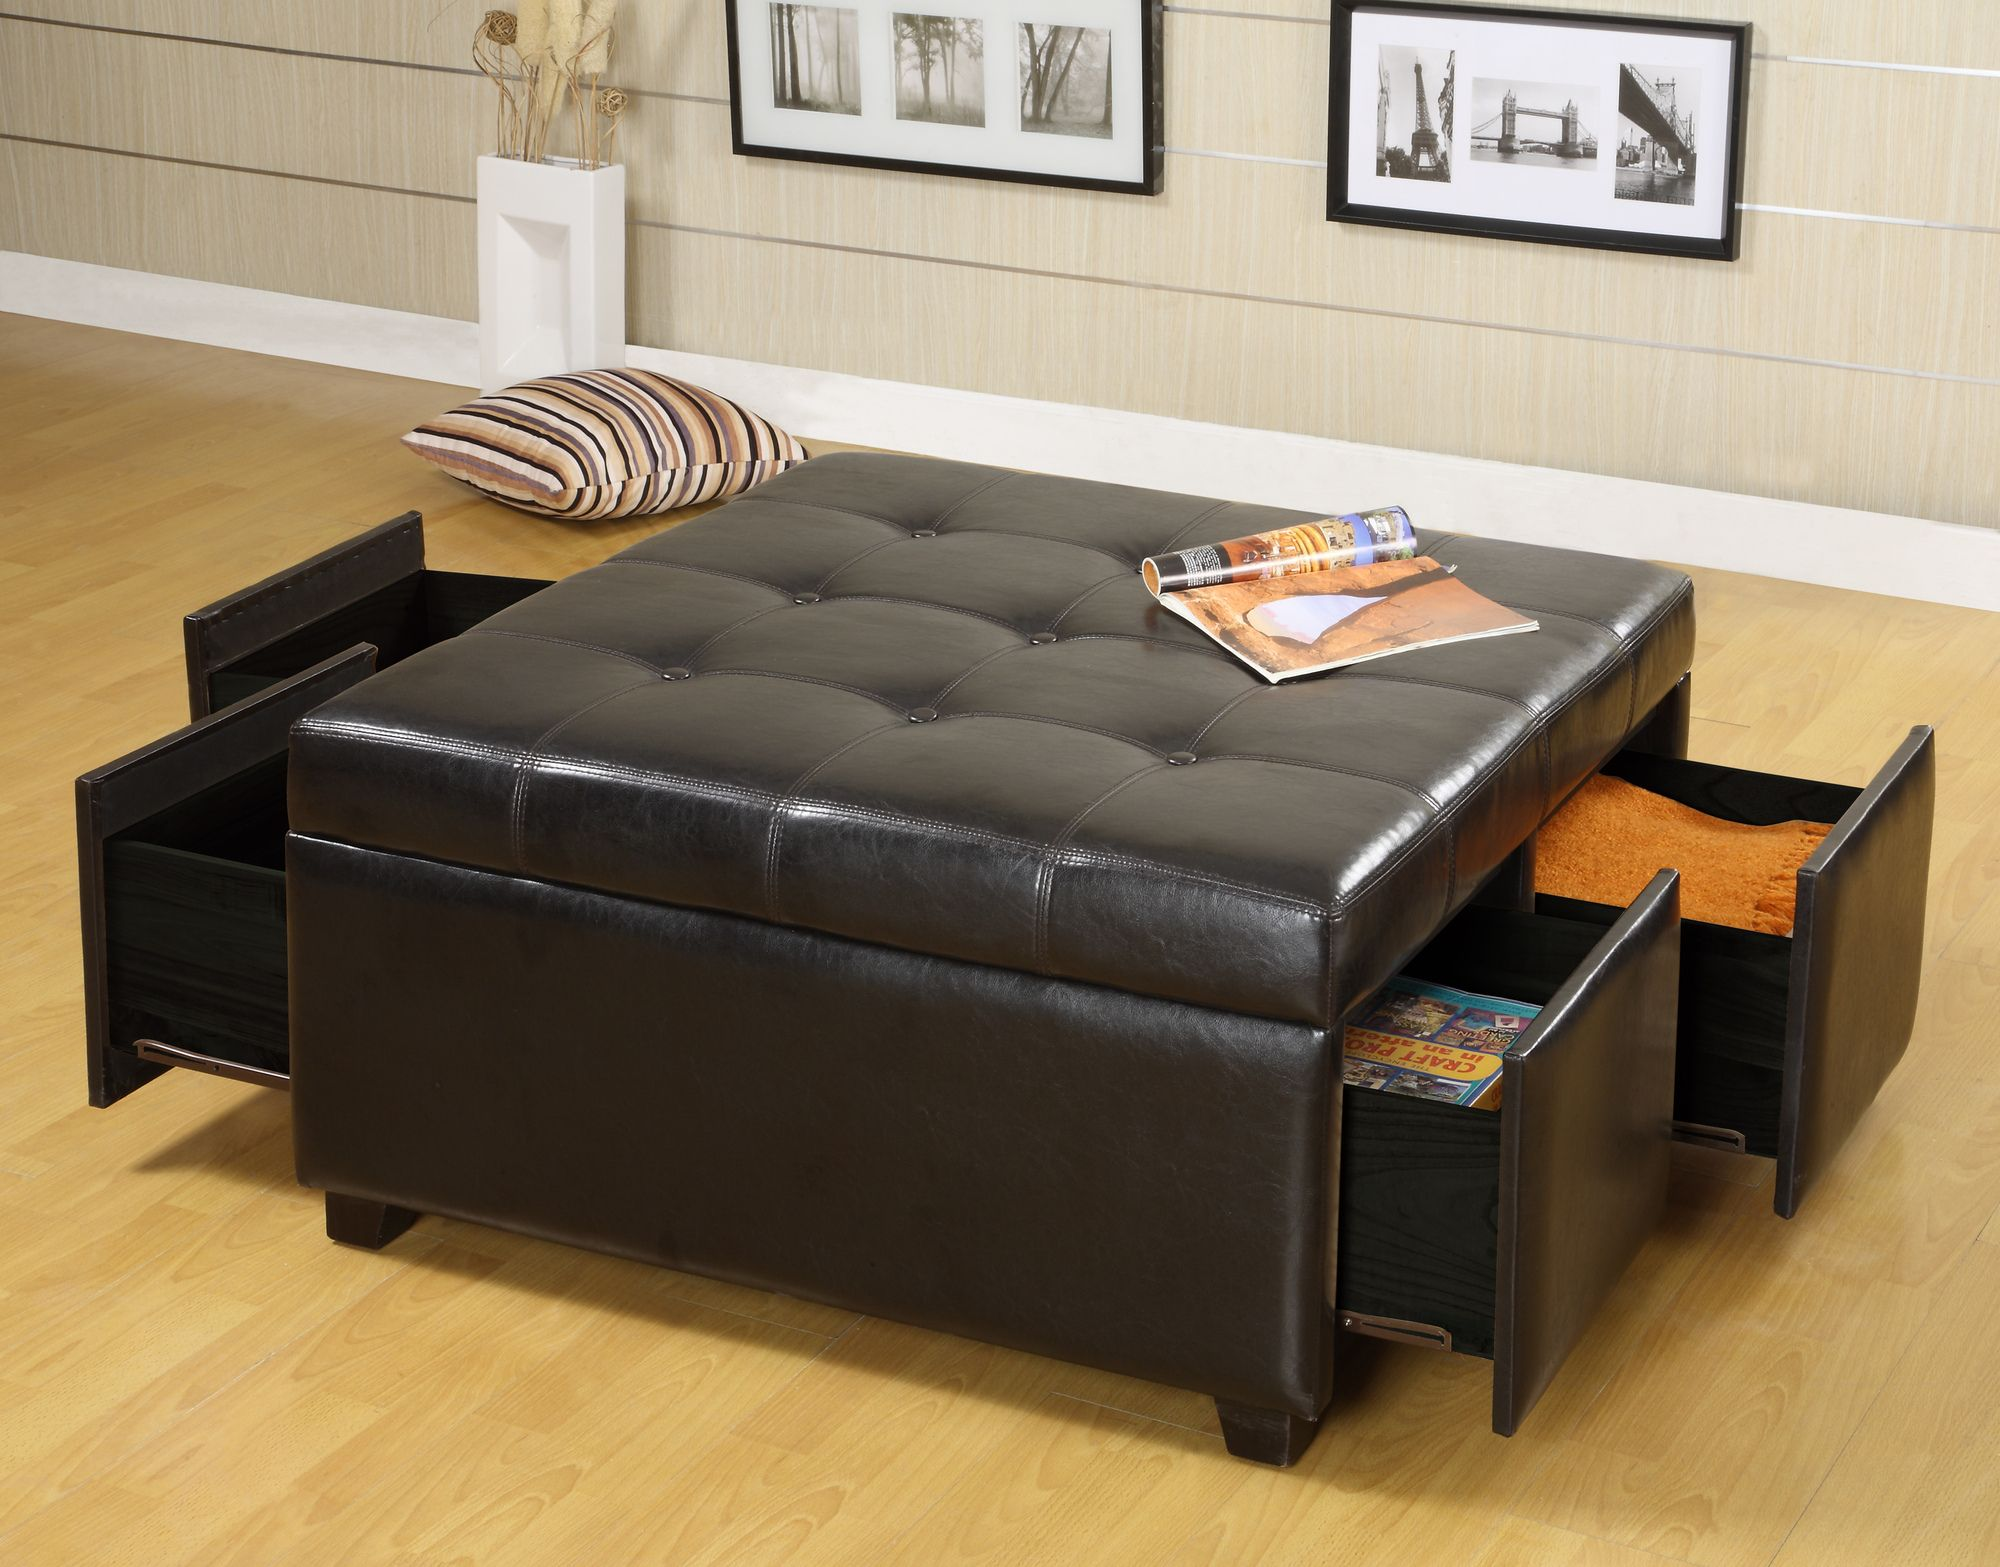 Leather Storage Ottoman Coffee Table - Rooms to Go Living Room Set ...